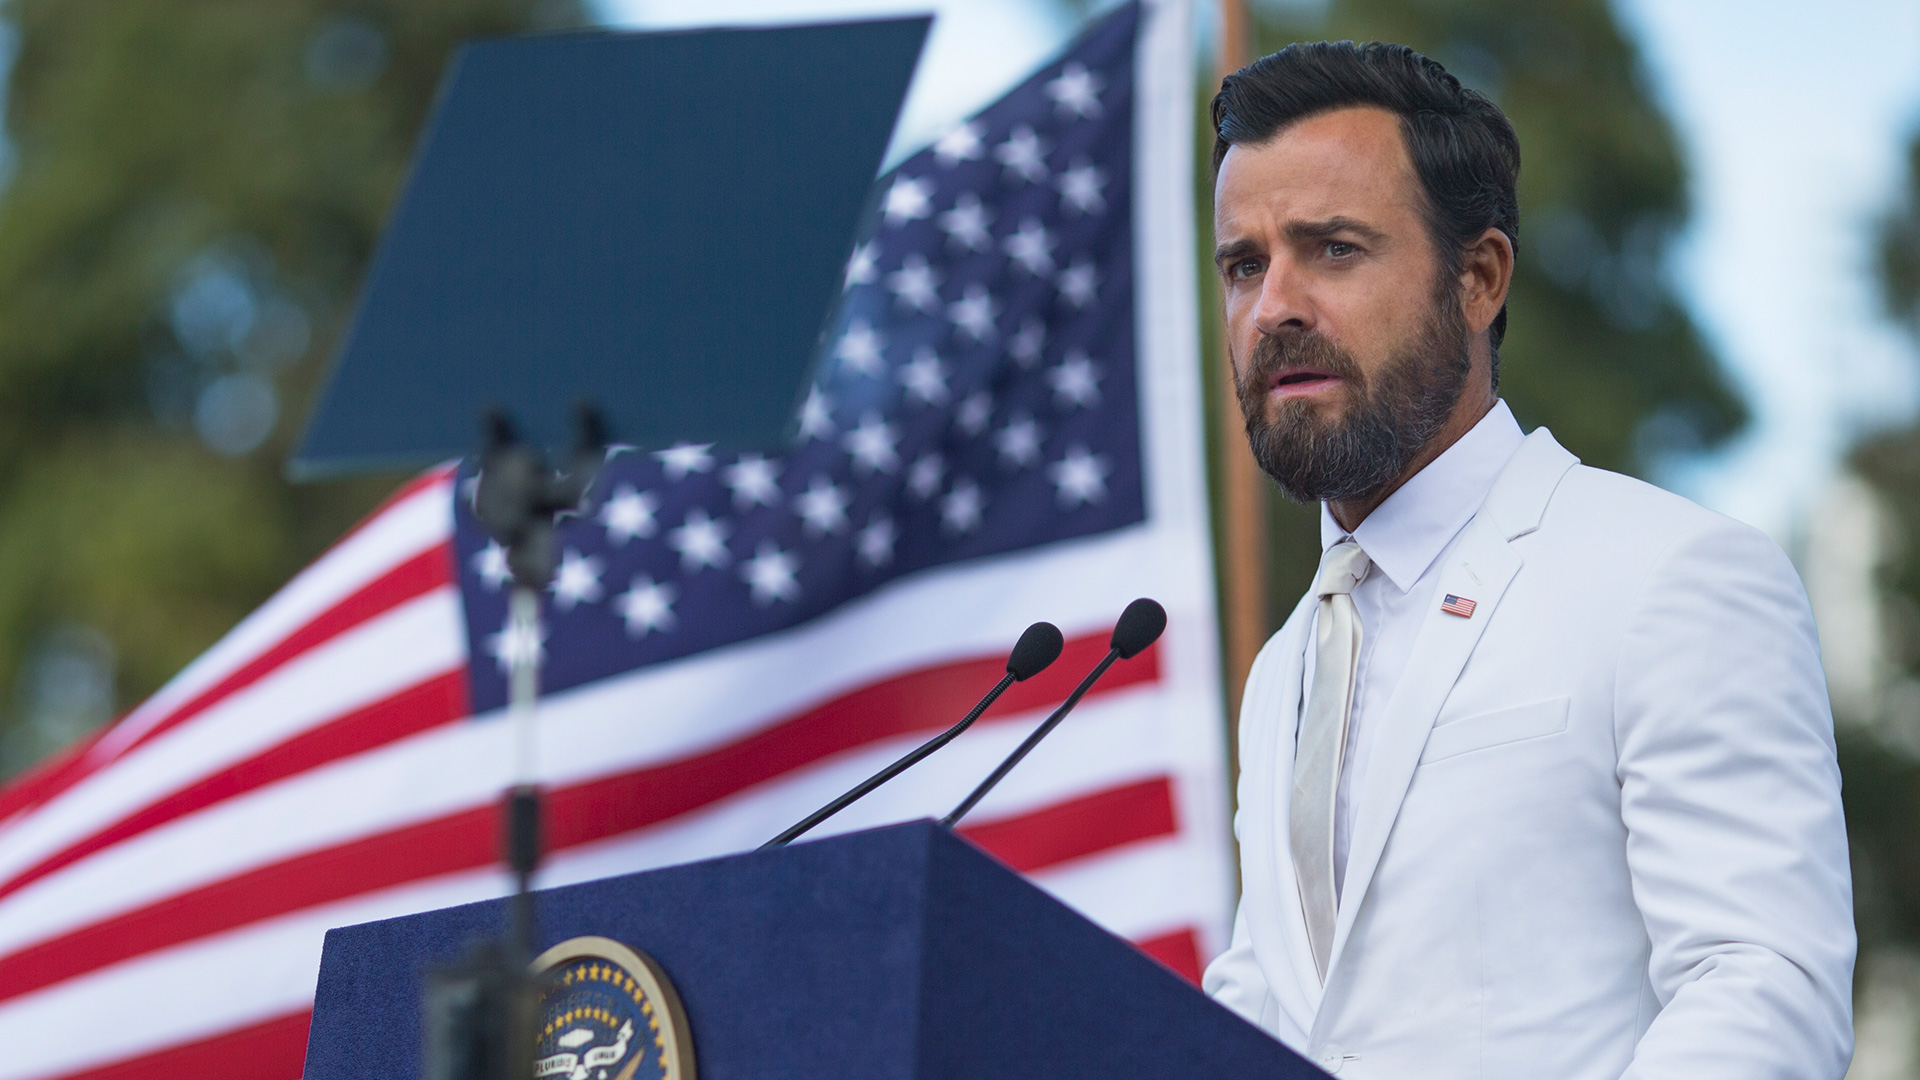 THE LEFTOVERS RECAP S3EP7 THE MOST POWERFUL MAN IN THE WORLD